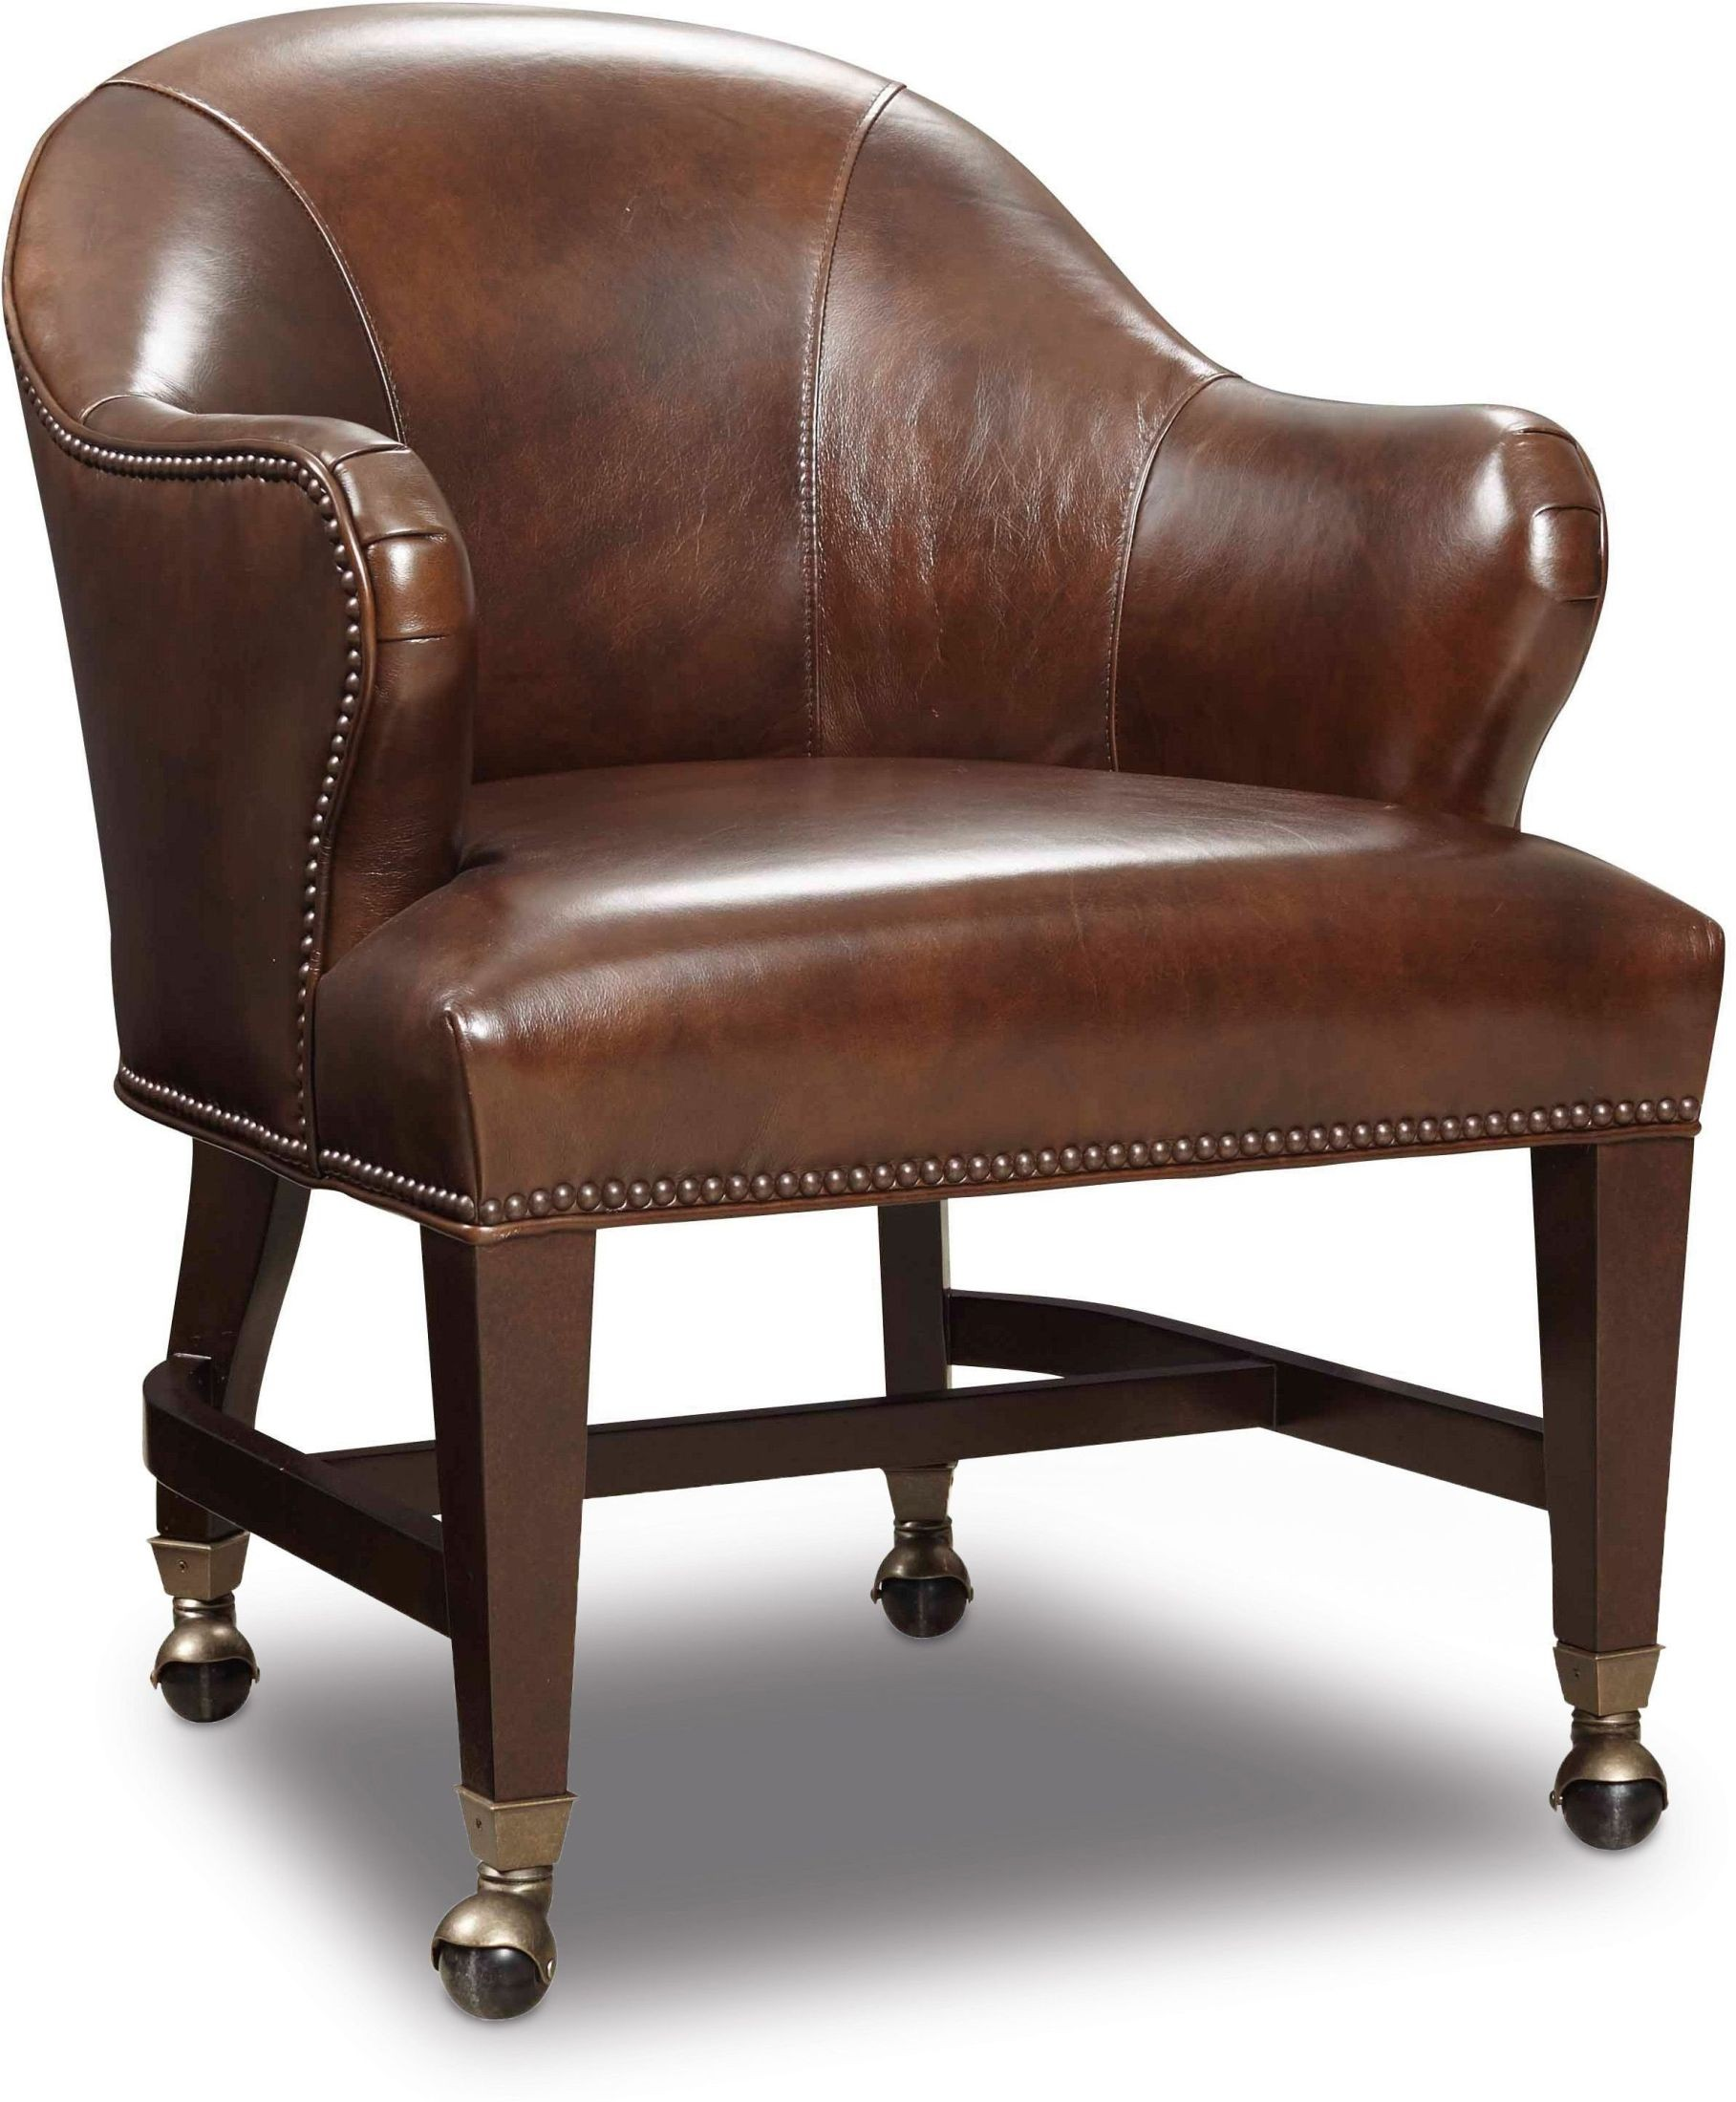 Queen Chairs Queen Brown Leather Game Chair From Hooker Coleman Furniture